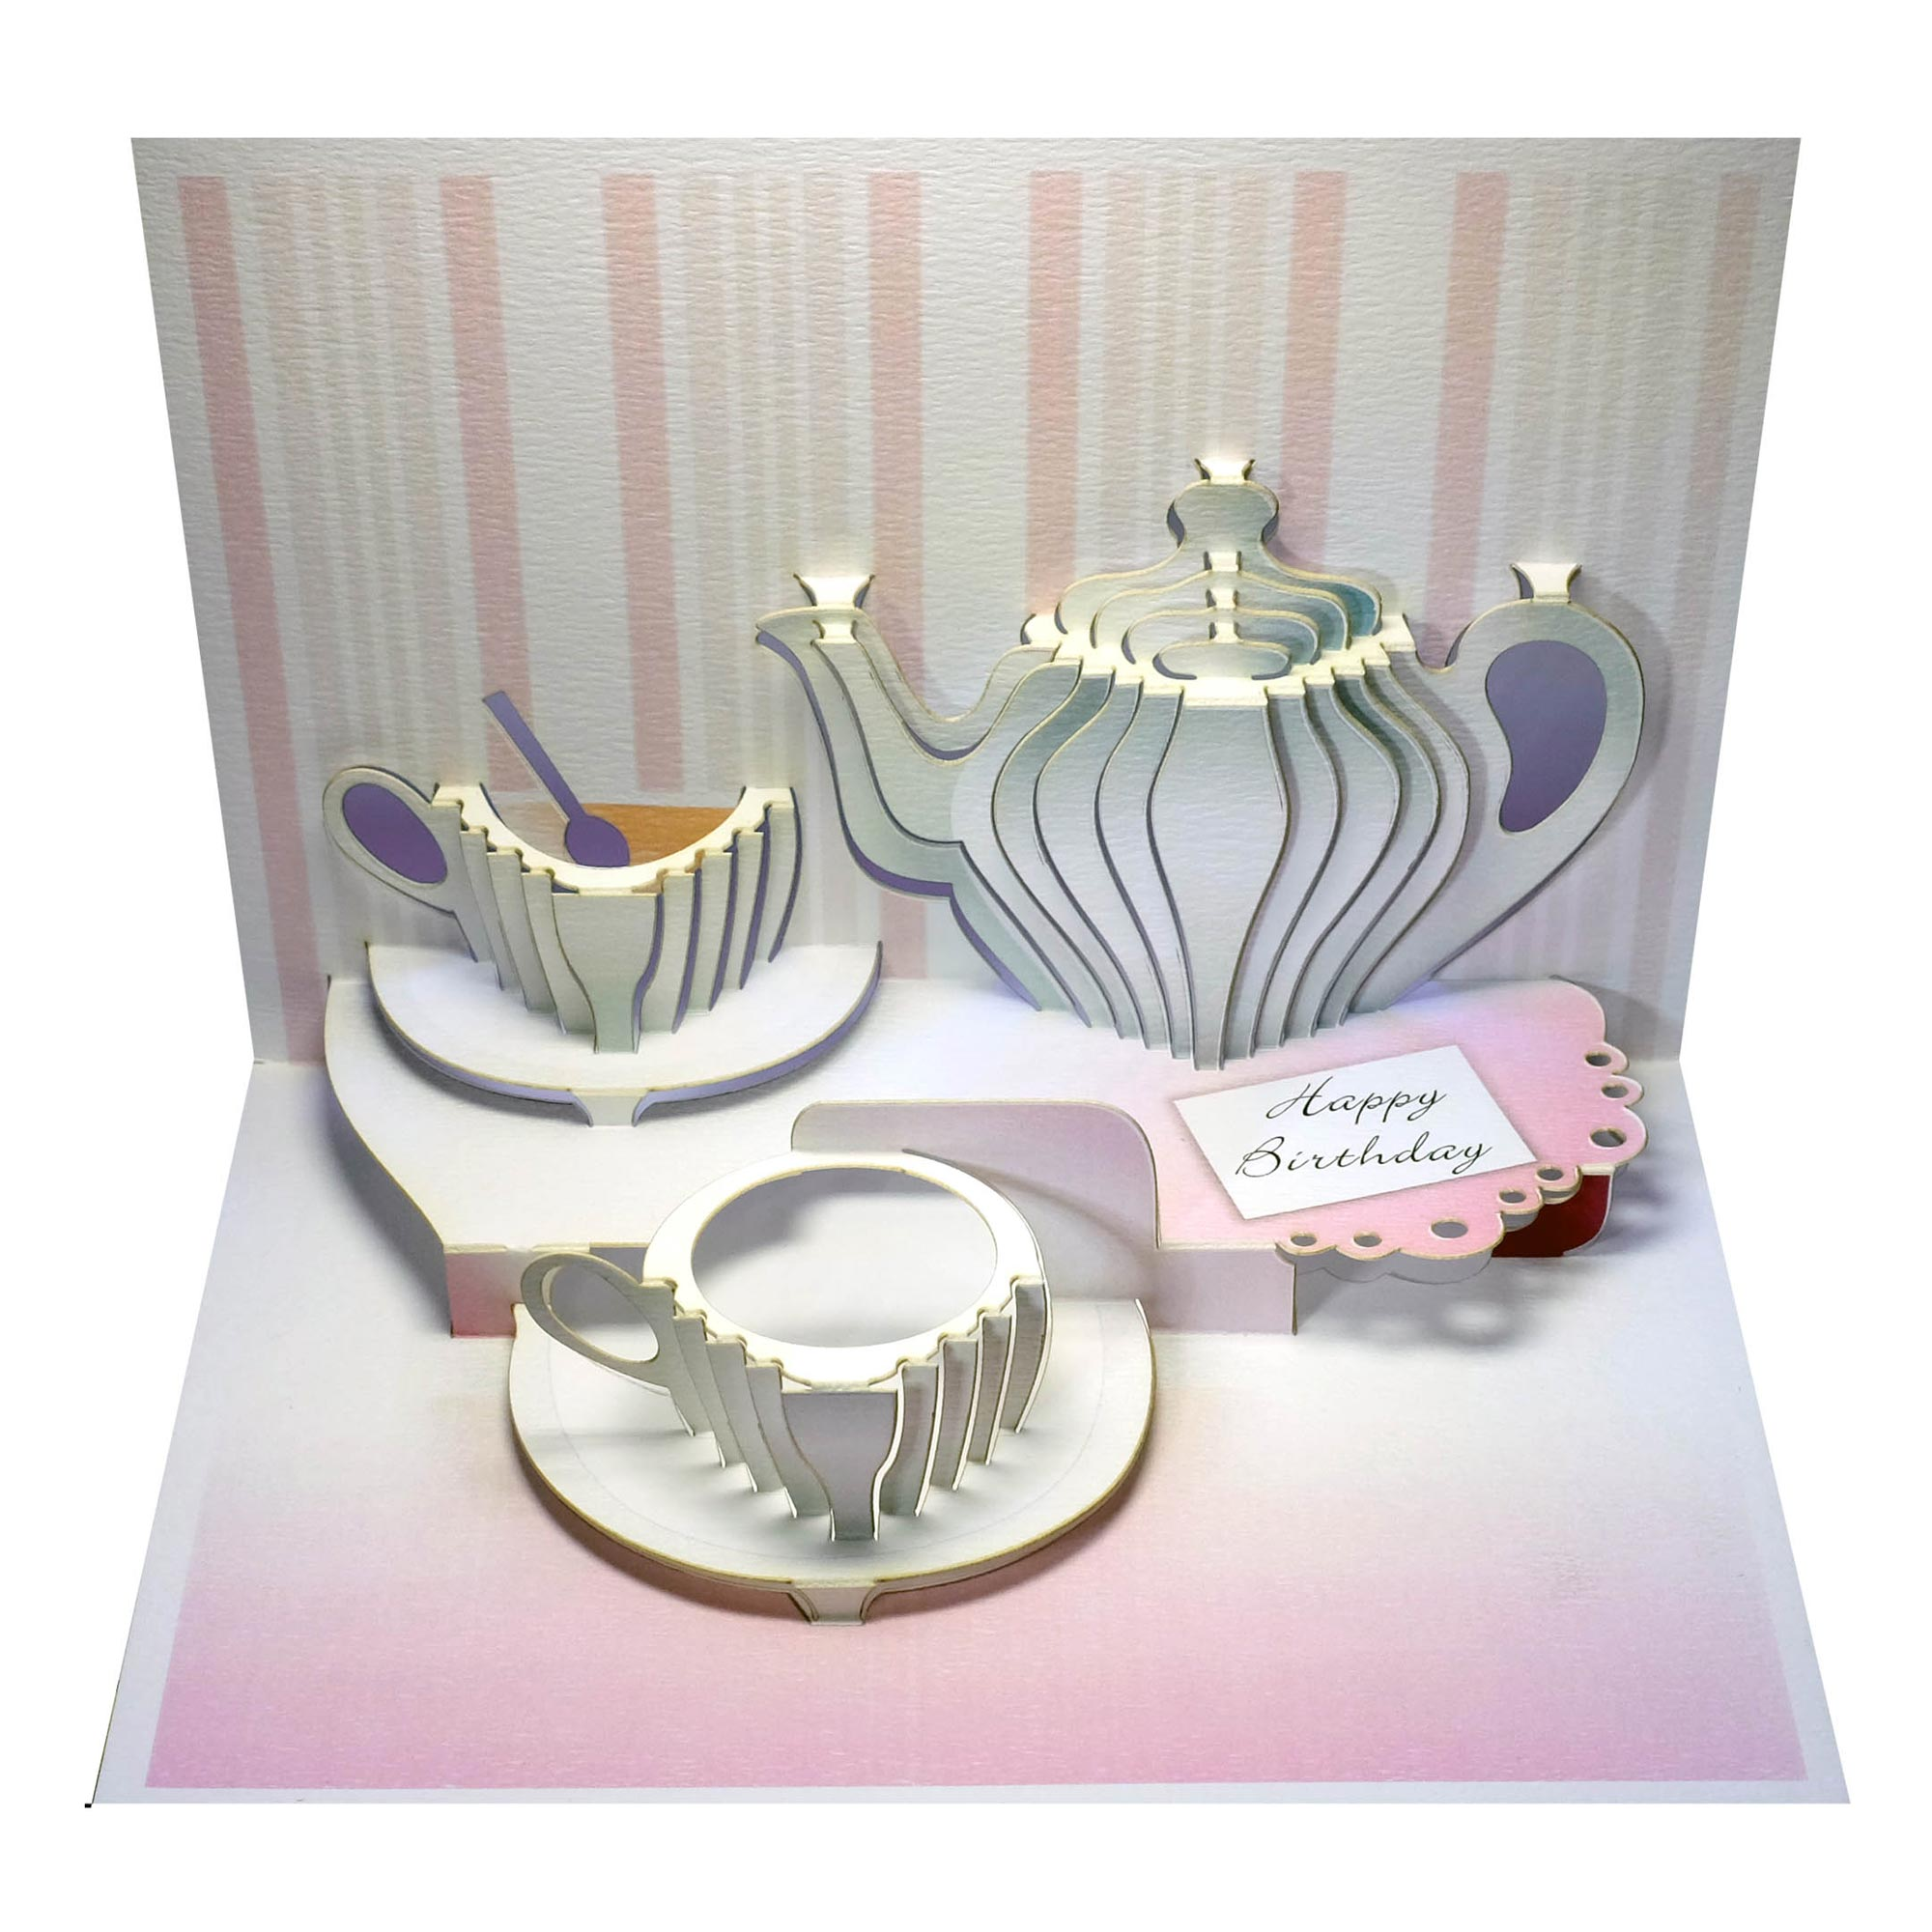 Ge feng forever happy birthday amazing pop up greeting card teatime happy birthday teatime amazing pop up greeting card m4hsunfo Image collections